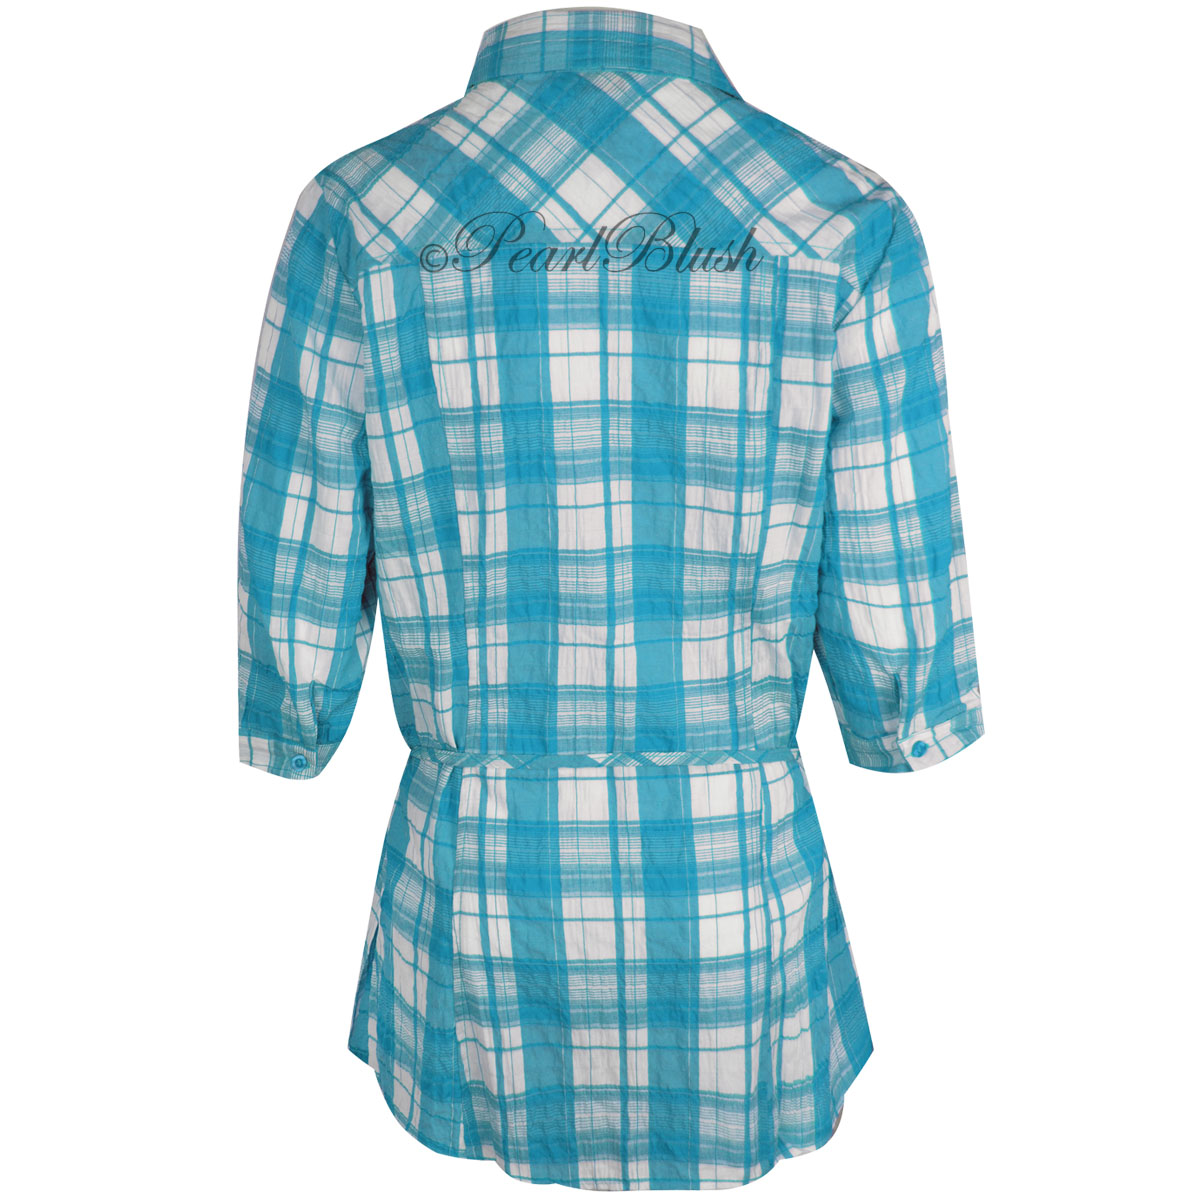 Womens ladies plaid check shirt 3 4 sleeve flannel button for Plaid button down shirts for women